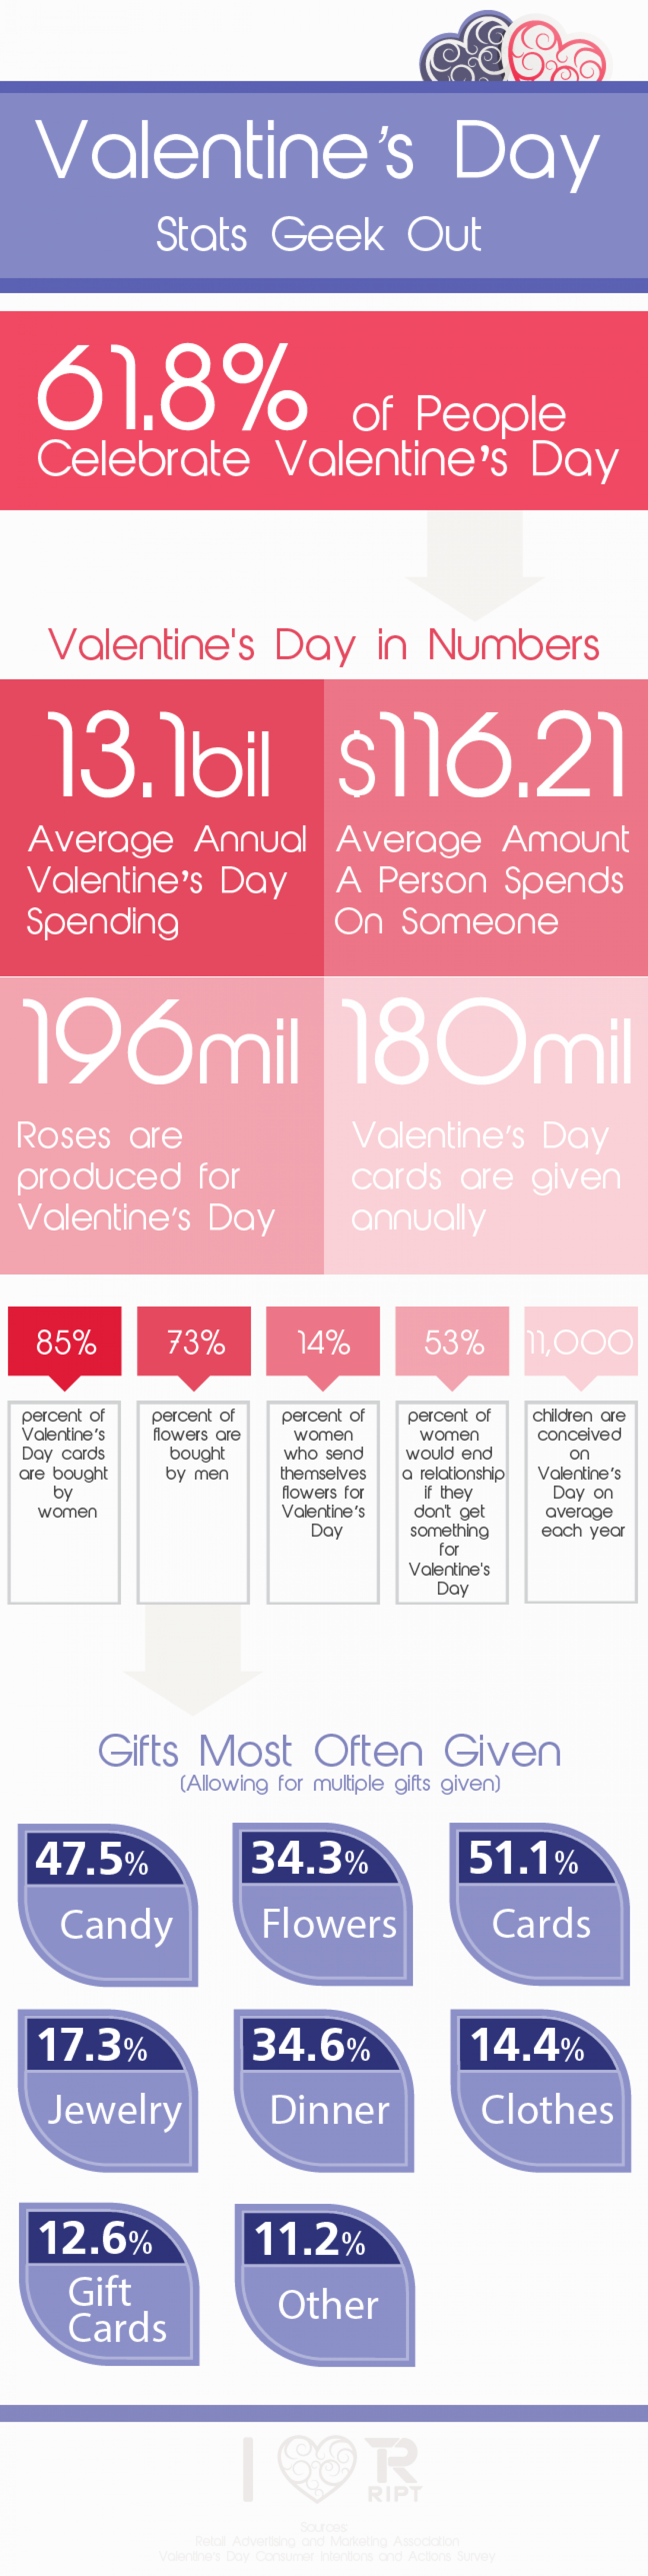 Valentine's Day Facts | Visual.ly